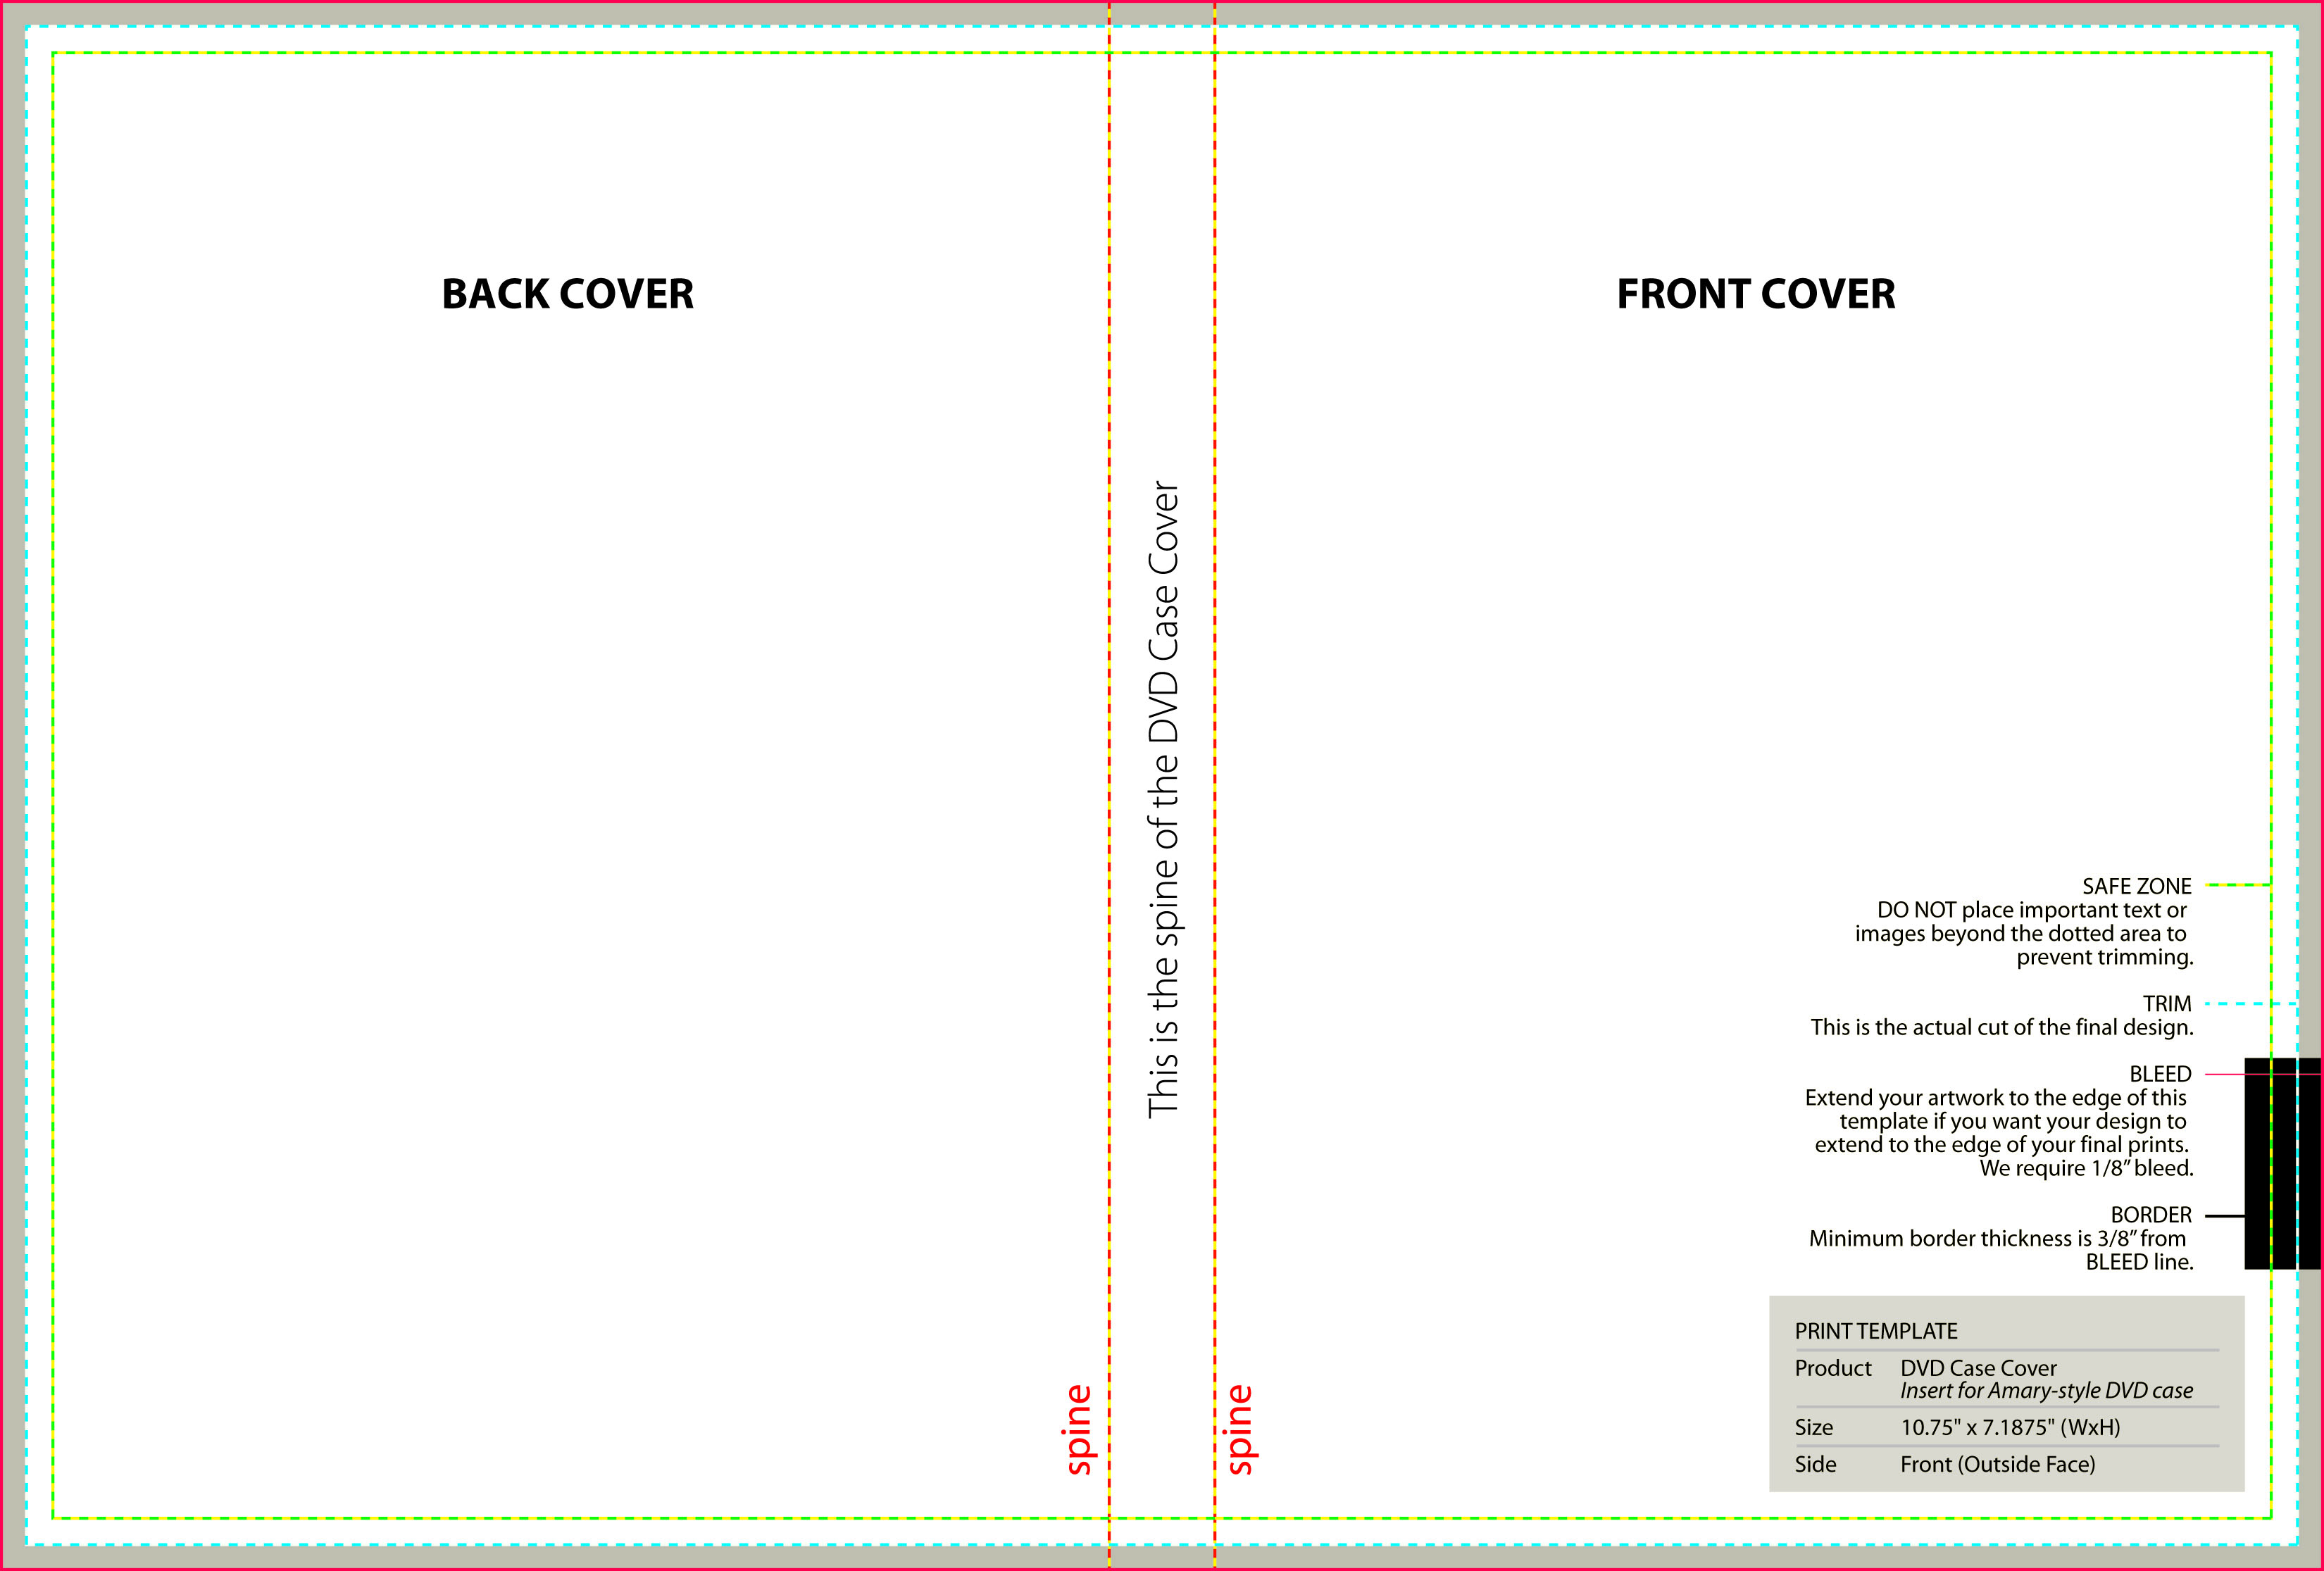 dvd case cover print with your custom designs nextdayflyers